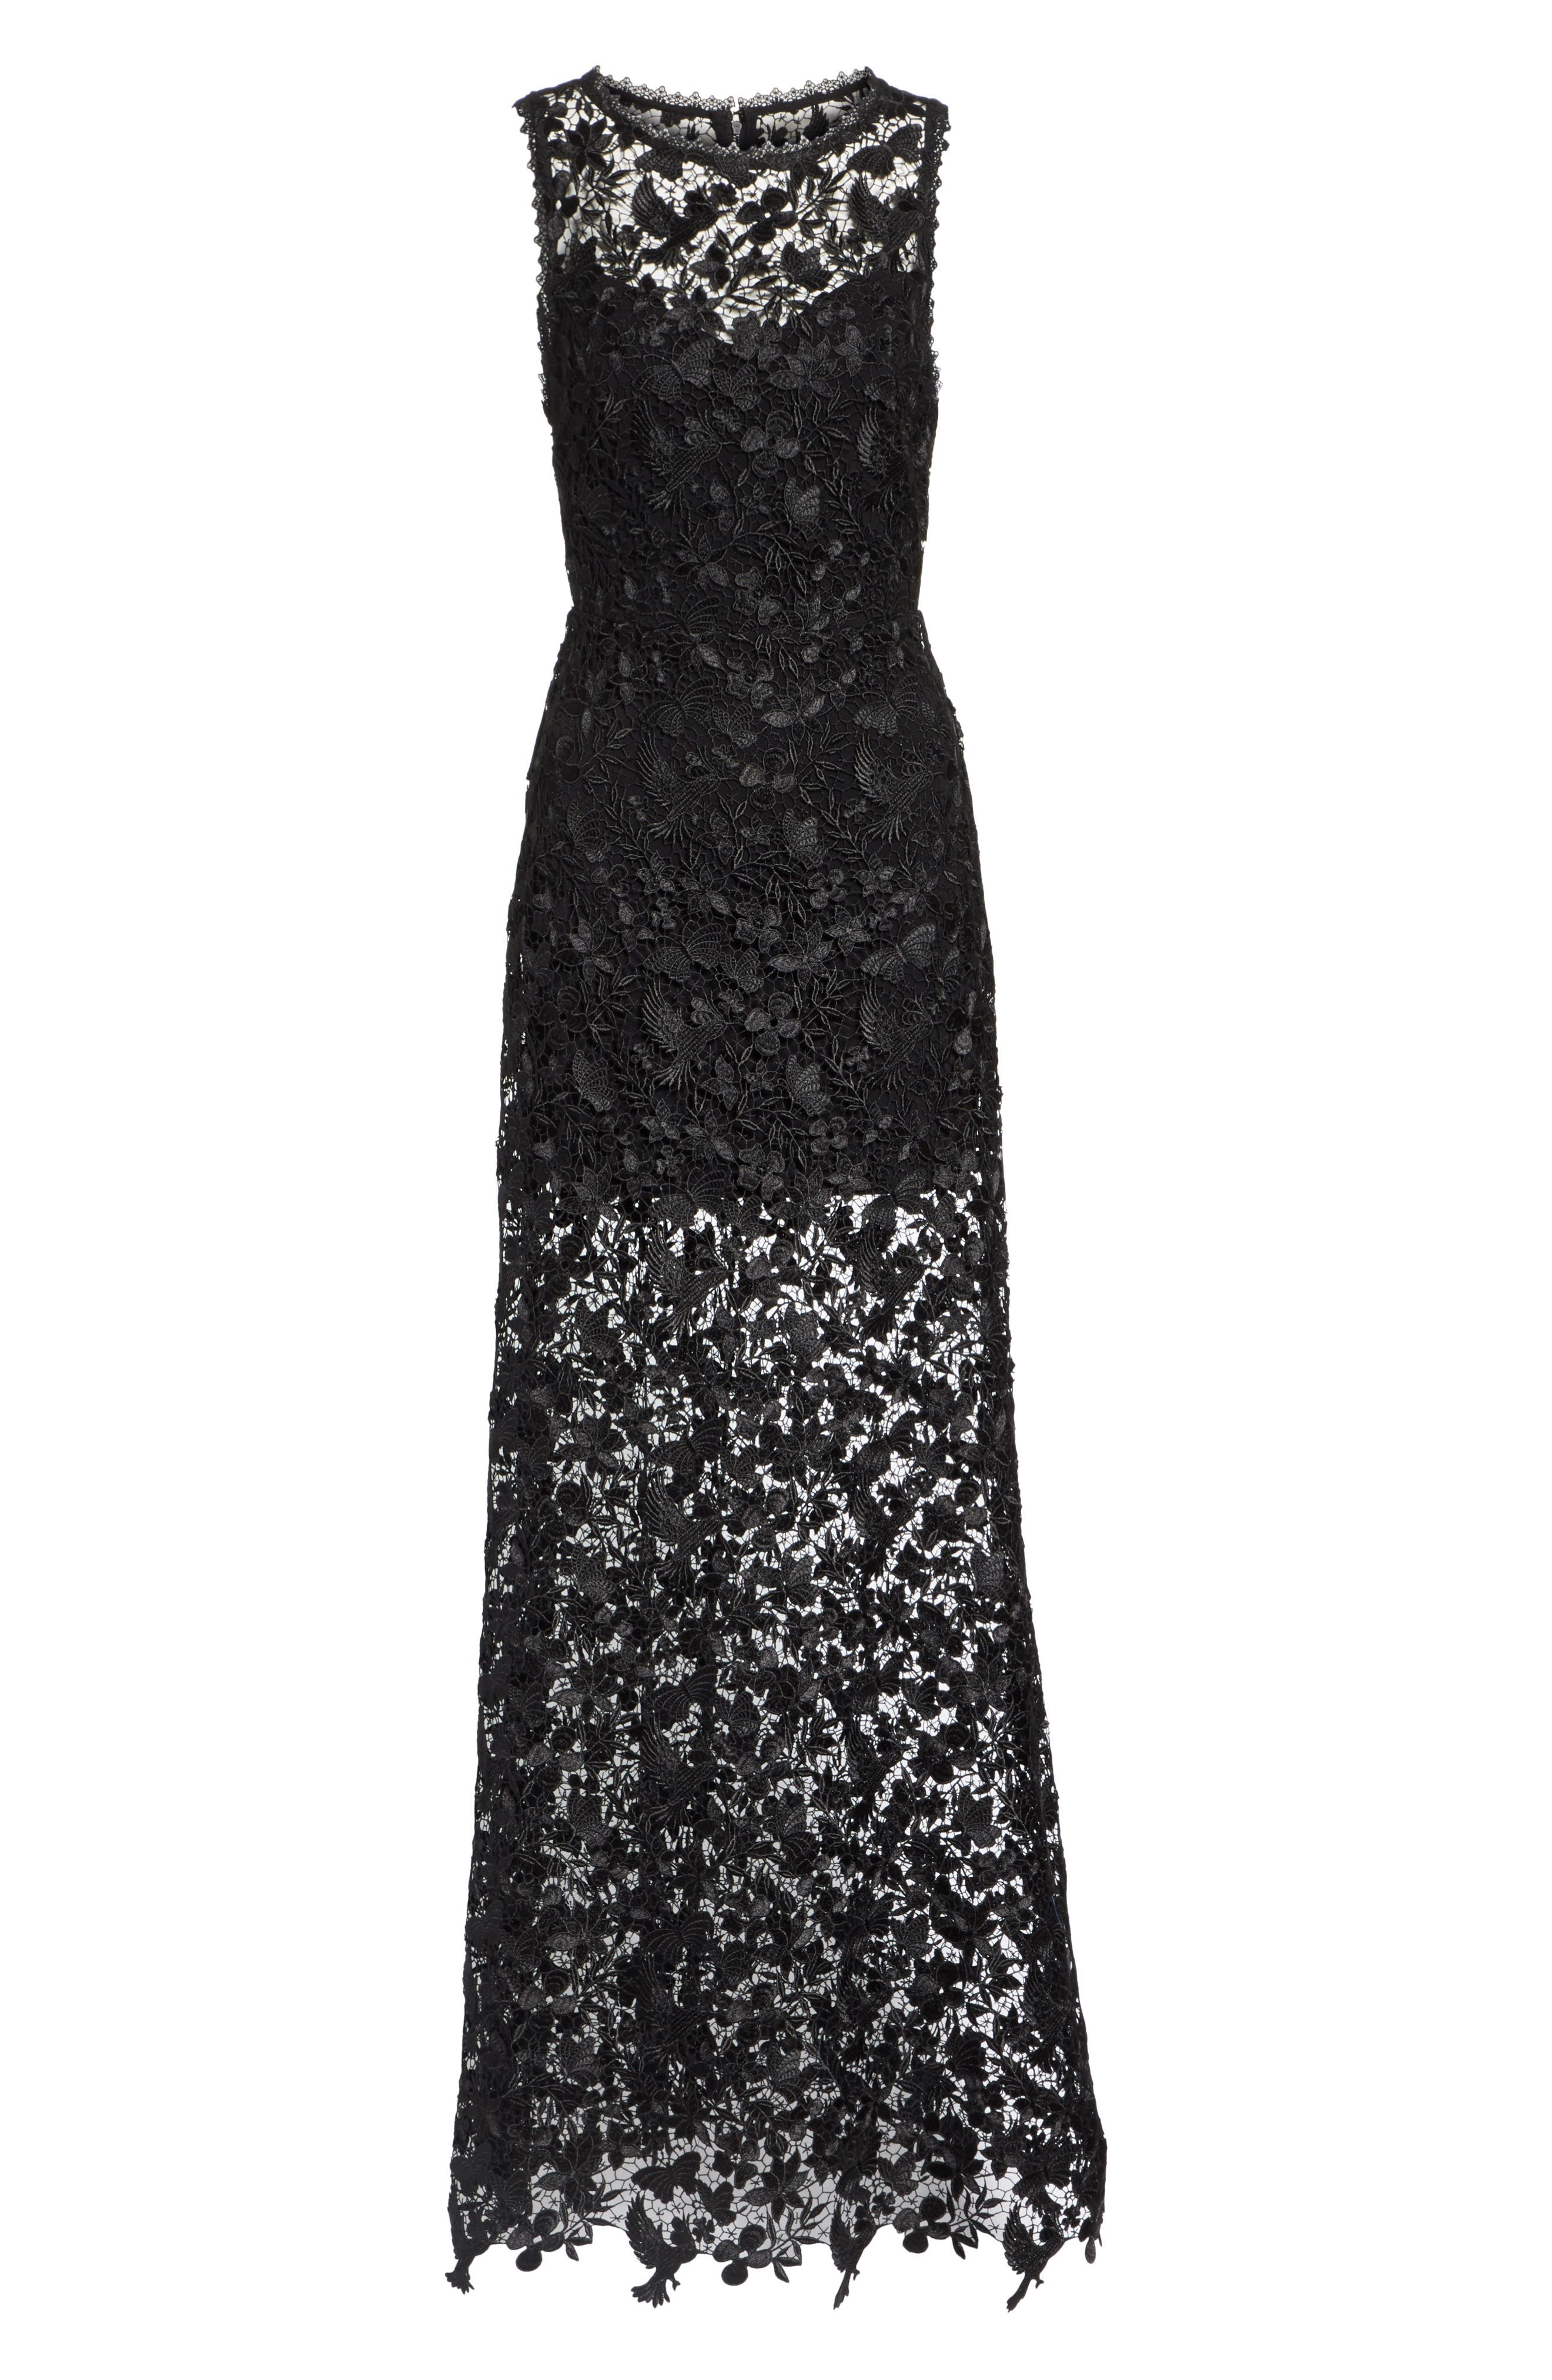 ALICE + OLIVIA,                             Danielle Silk Lace Overlay Sheer Maxi Dress,                             Alternate thumbnail 6, color,                             001